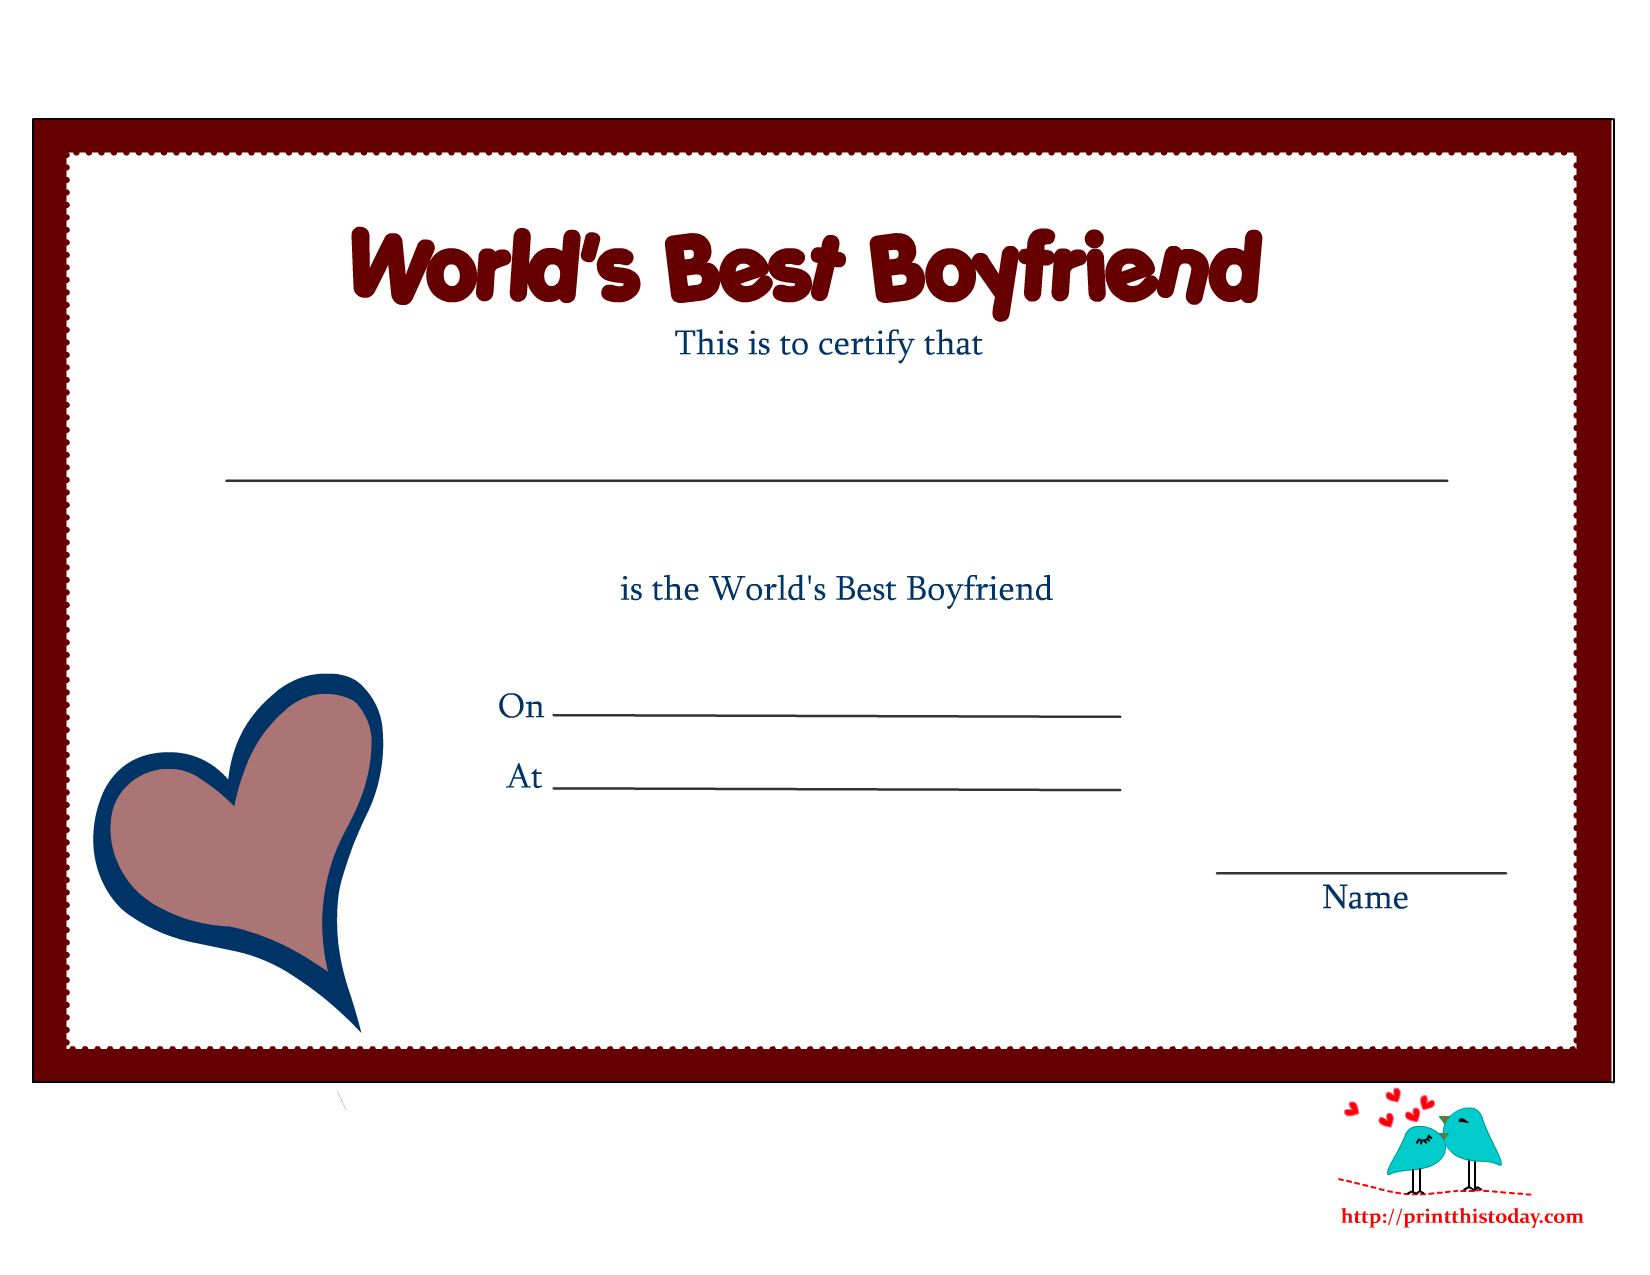 printable award certificate borders printable world s printable award certificate borders printable world s best boyfriend certificates print this